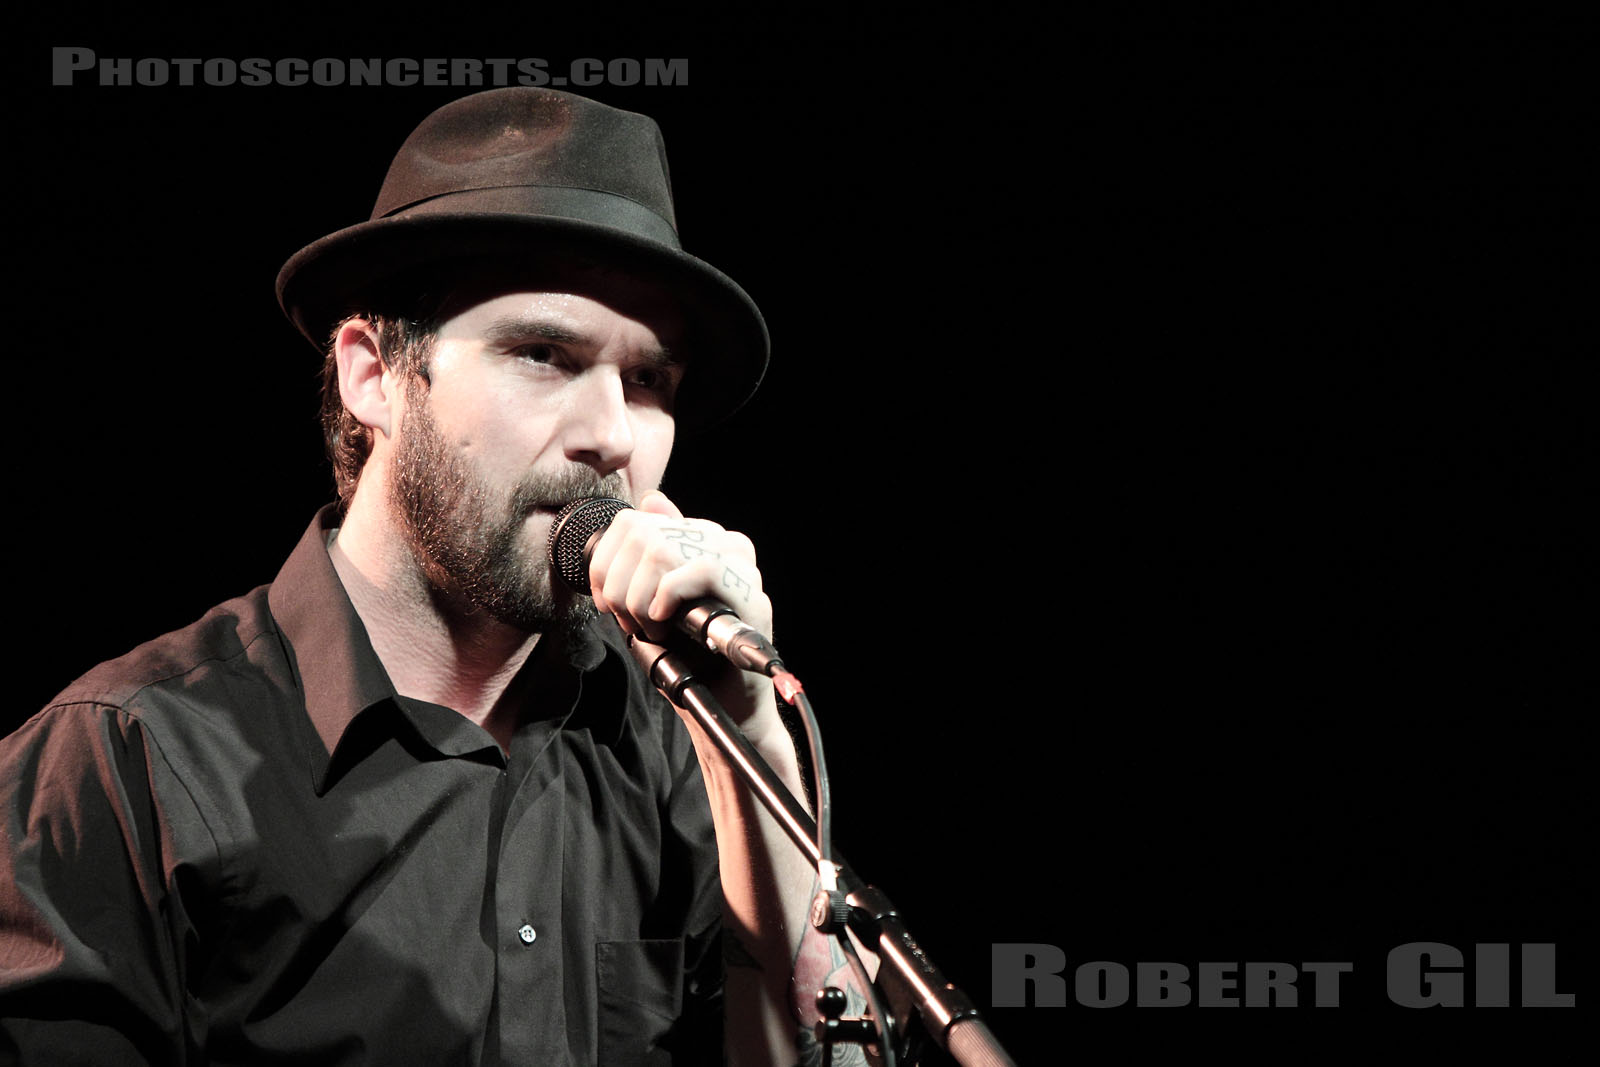 WILLIAM ELLIOTT WHITMORE - 2009-04-06 - PARIS - Le Bataclan